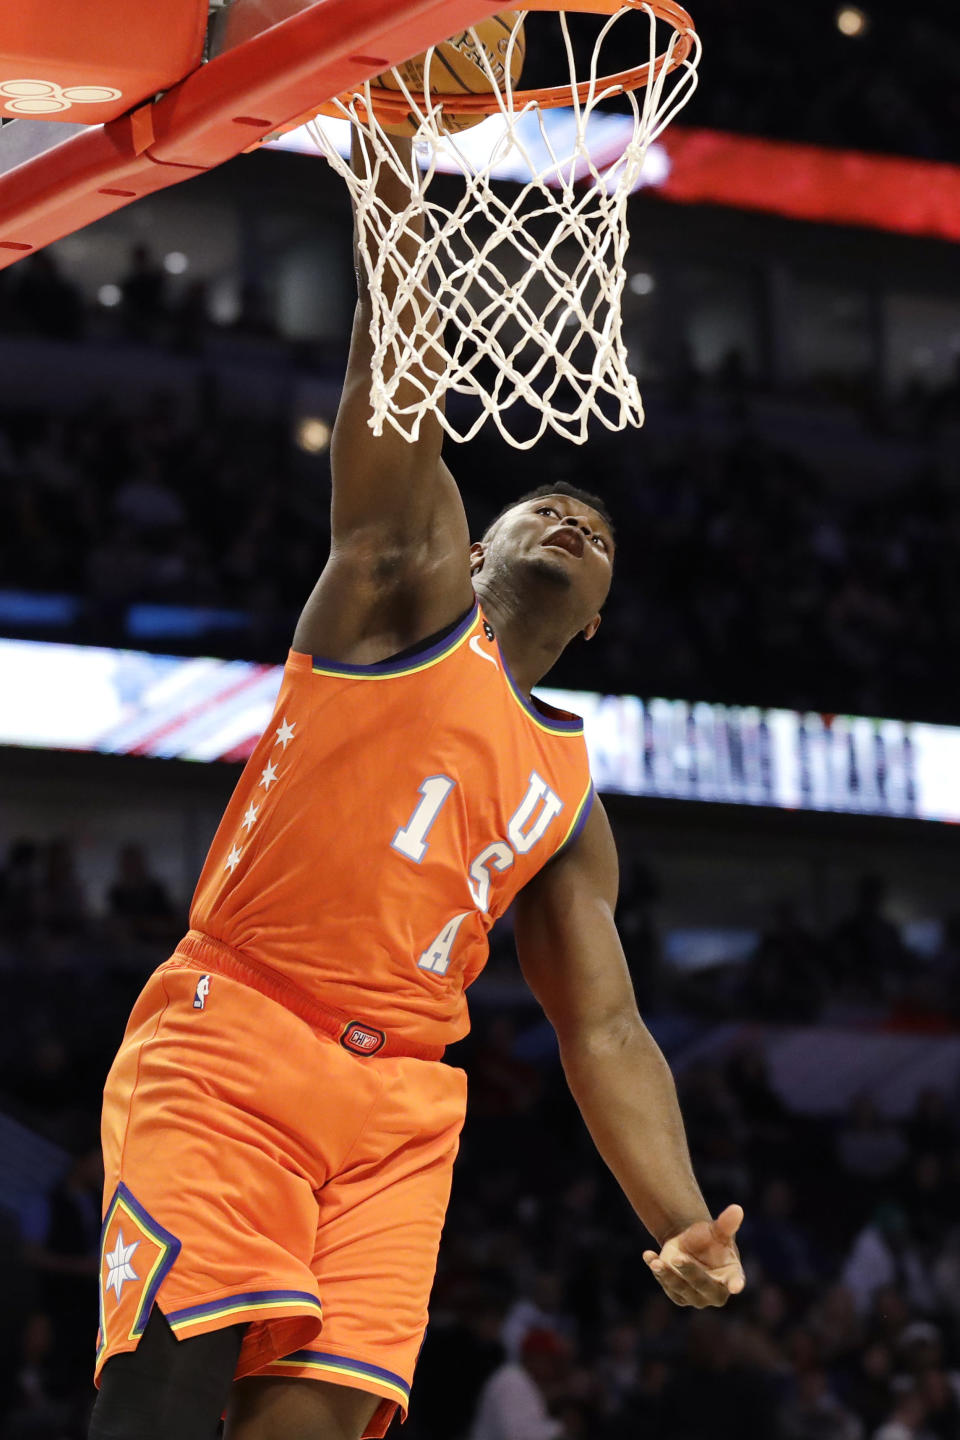 Team USA forward Zion Williamson, of the New Orleans Pelicans, dunks against during the second half against Team World in the NBA Rising Stars basketball game in Chicago, Friday, Feb. 14, 2020. (AP Photo/Nam Y. Huh)